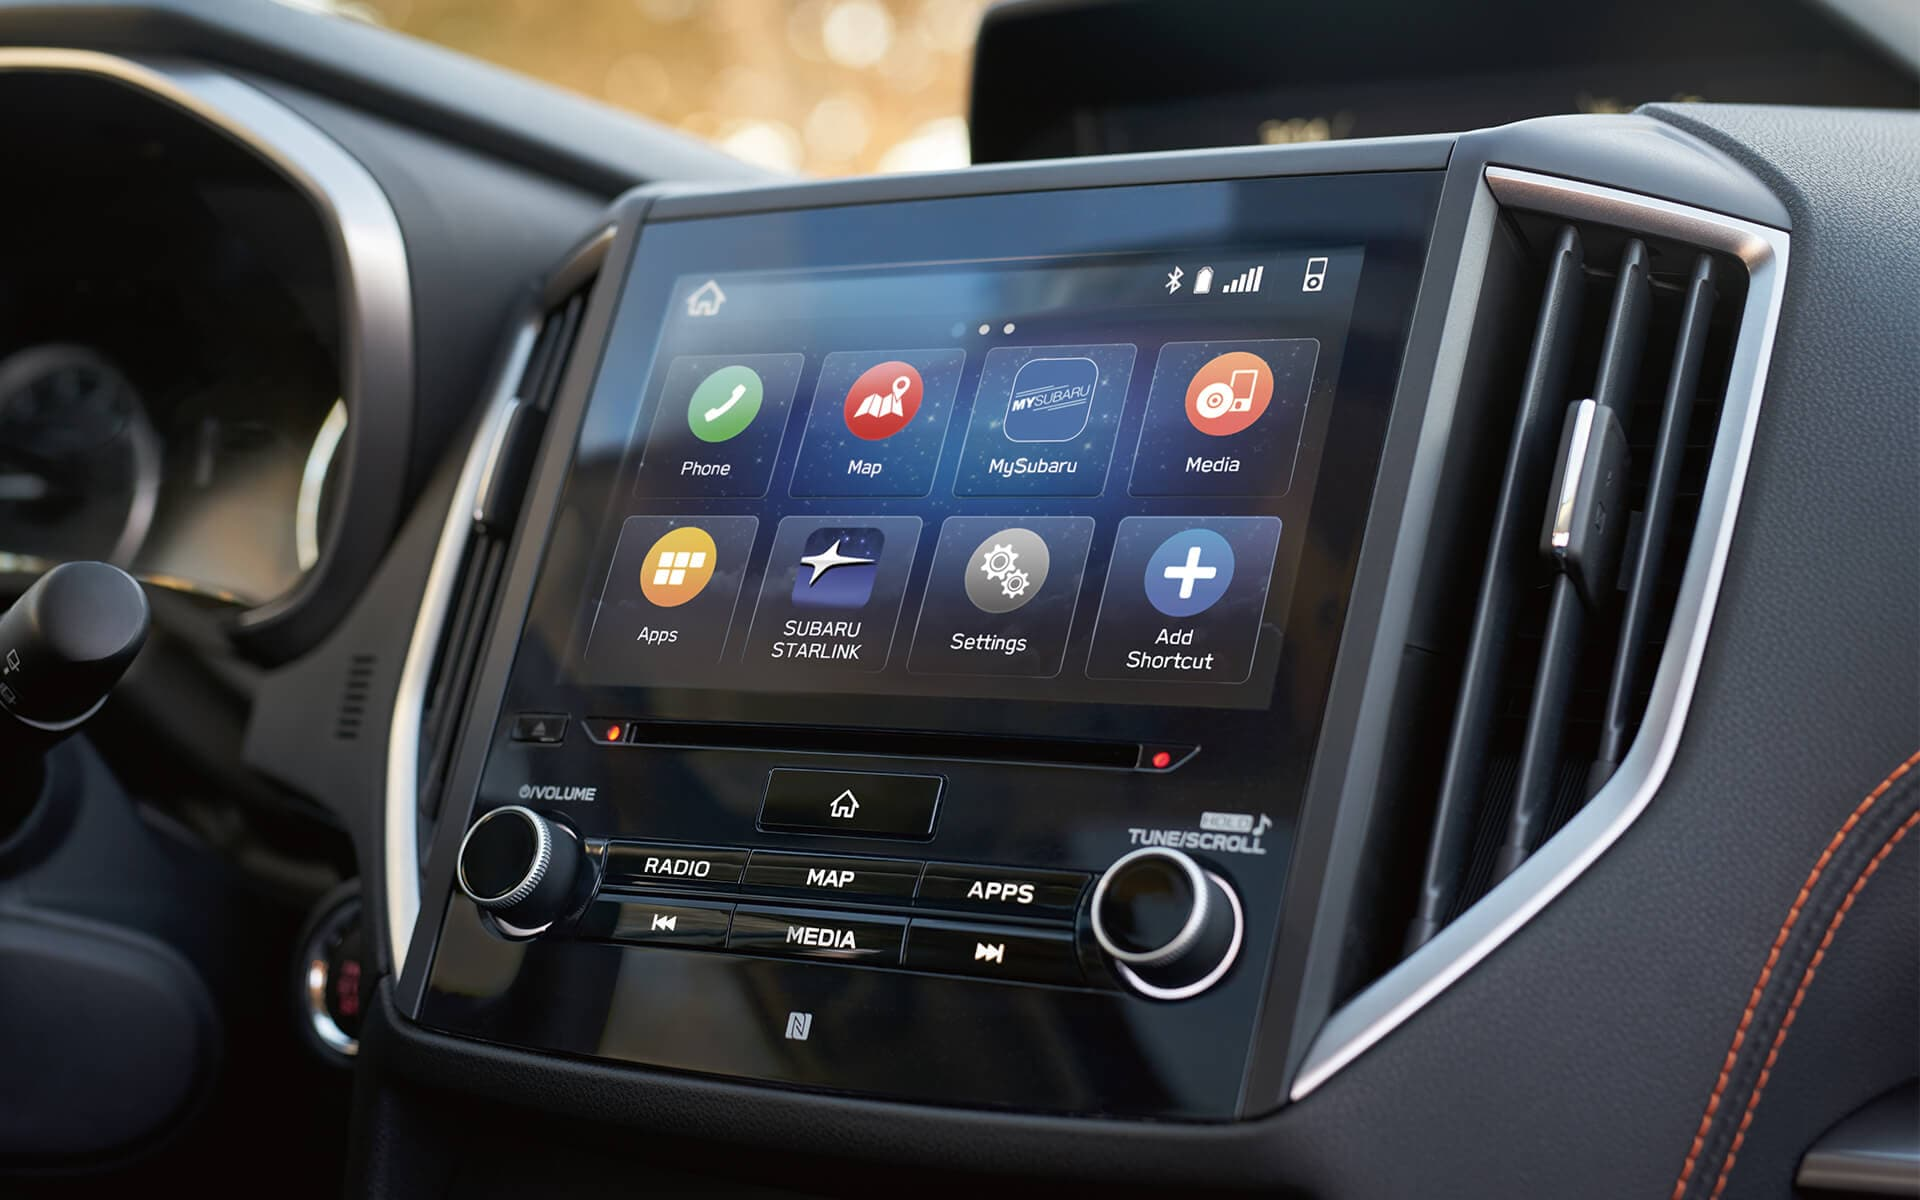 A close-up of the touchscreen for the SUBARU STARLINK® Multimedia system in the 2020 Crosstrek.